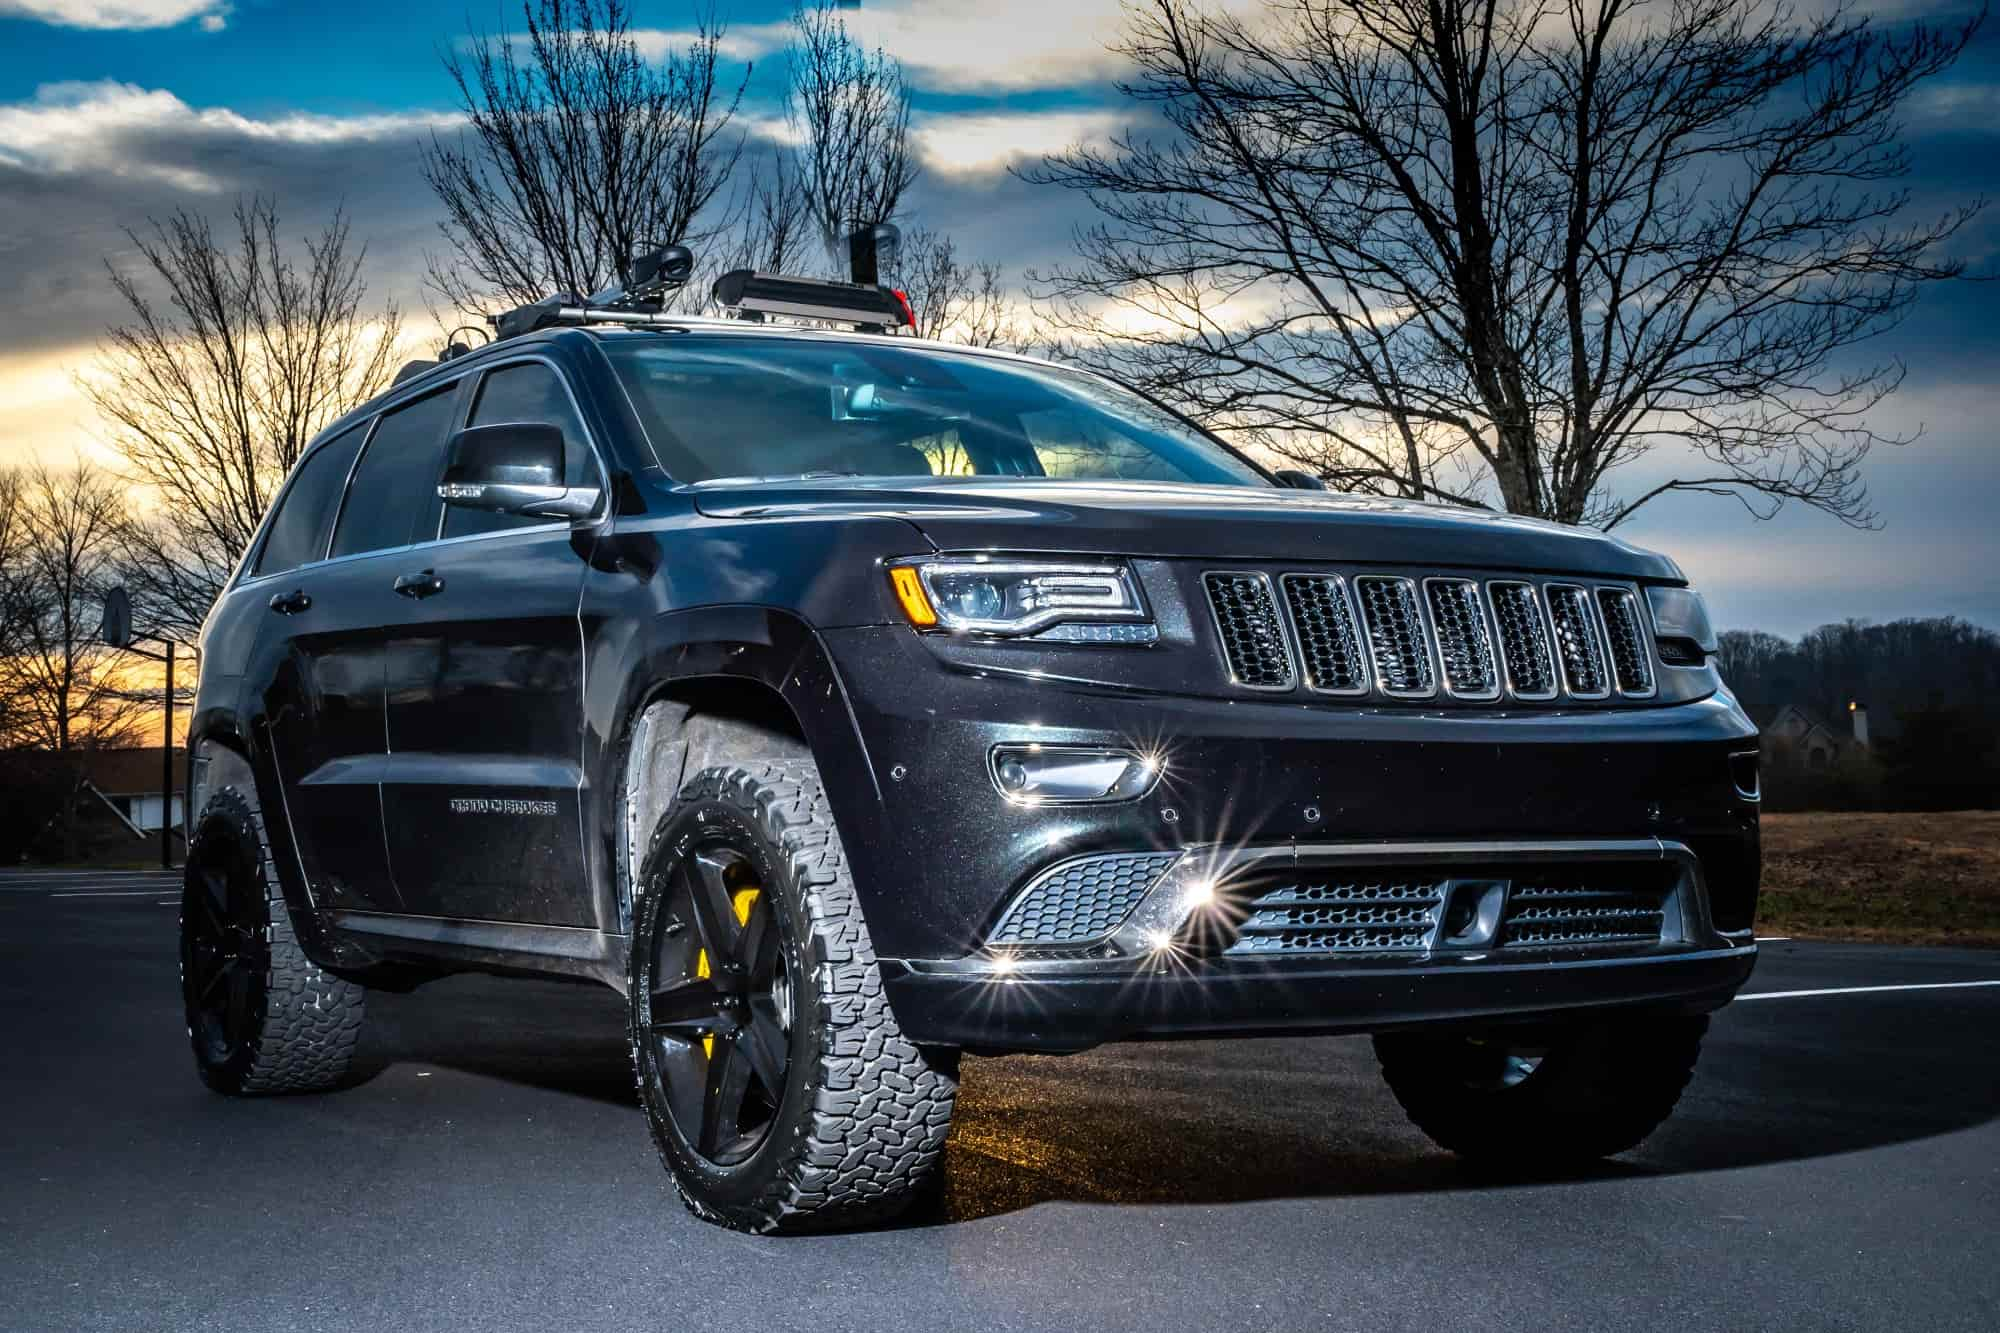 A grey 2015 Jeep Grand Cherokee running the Factory Reproductions Fr63 20x9 +34 wrapped in some tried and true BFGoodrich All Terrain Ta Ko2 275/55 and a AirLinks Leveling Kit